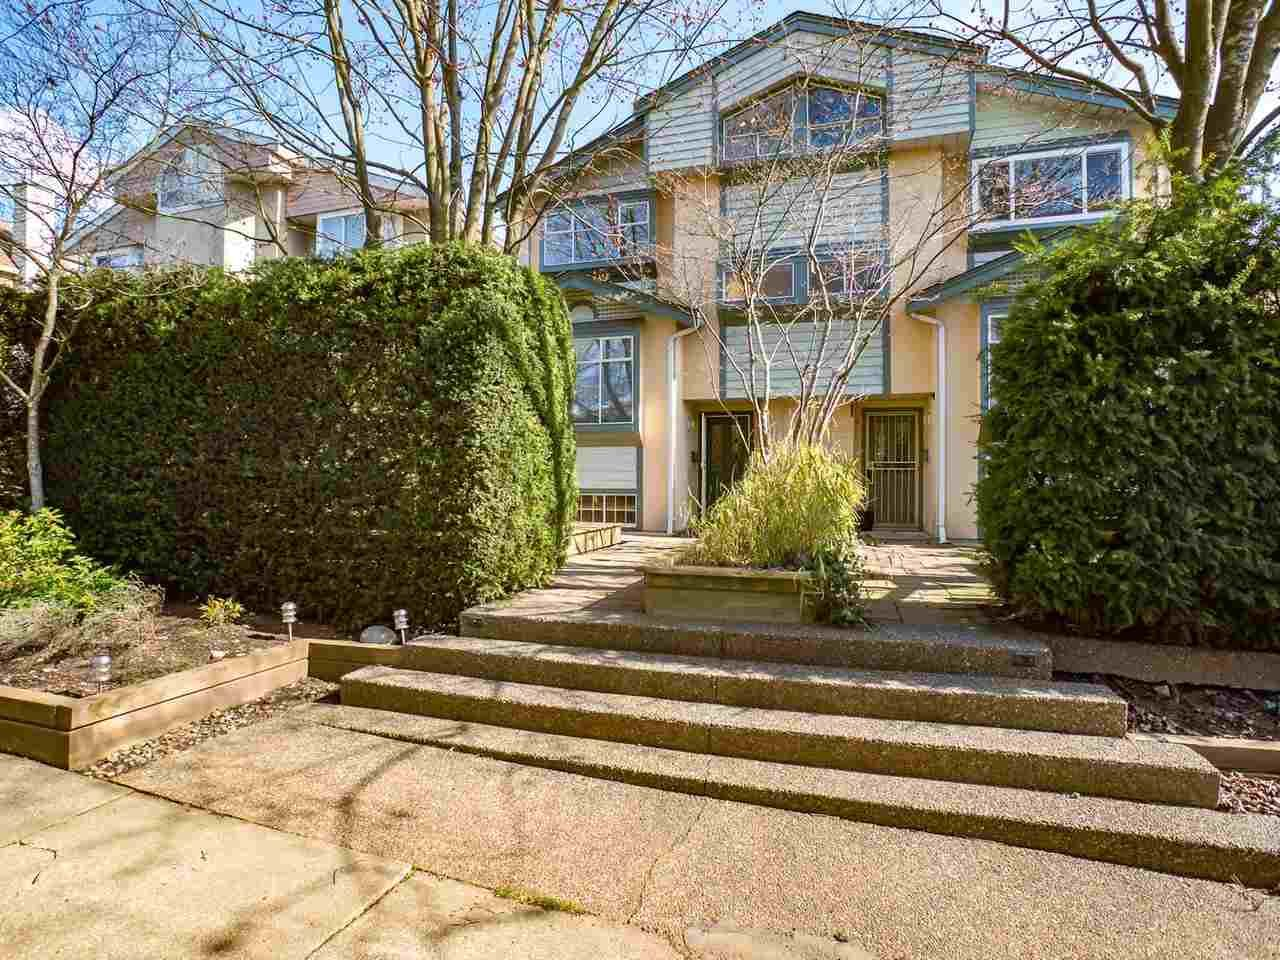 """Main Photo: 8490 FRENCH Street in Vancouver: Marpole 1/2 Duplex for sale in """"MARPOLE"""" (Vancouver West)  : MLS®# R2483416"""